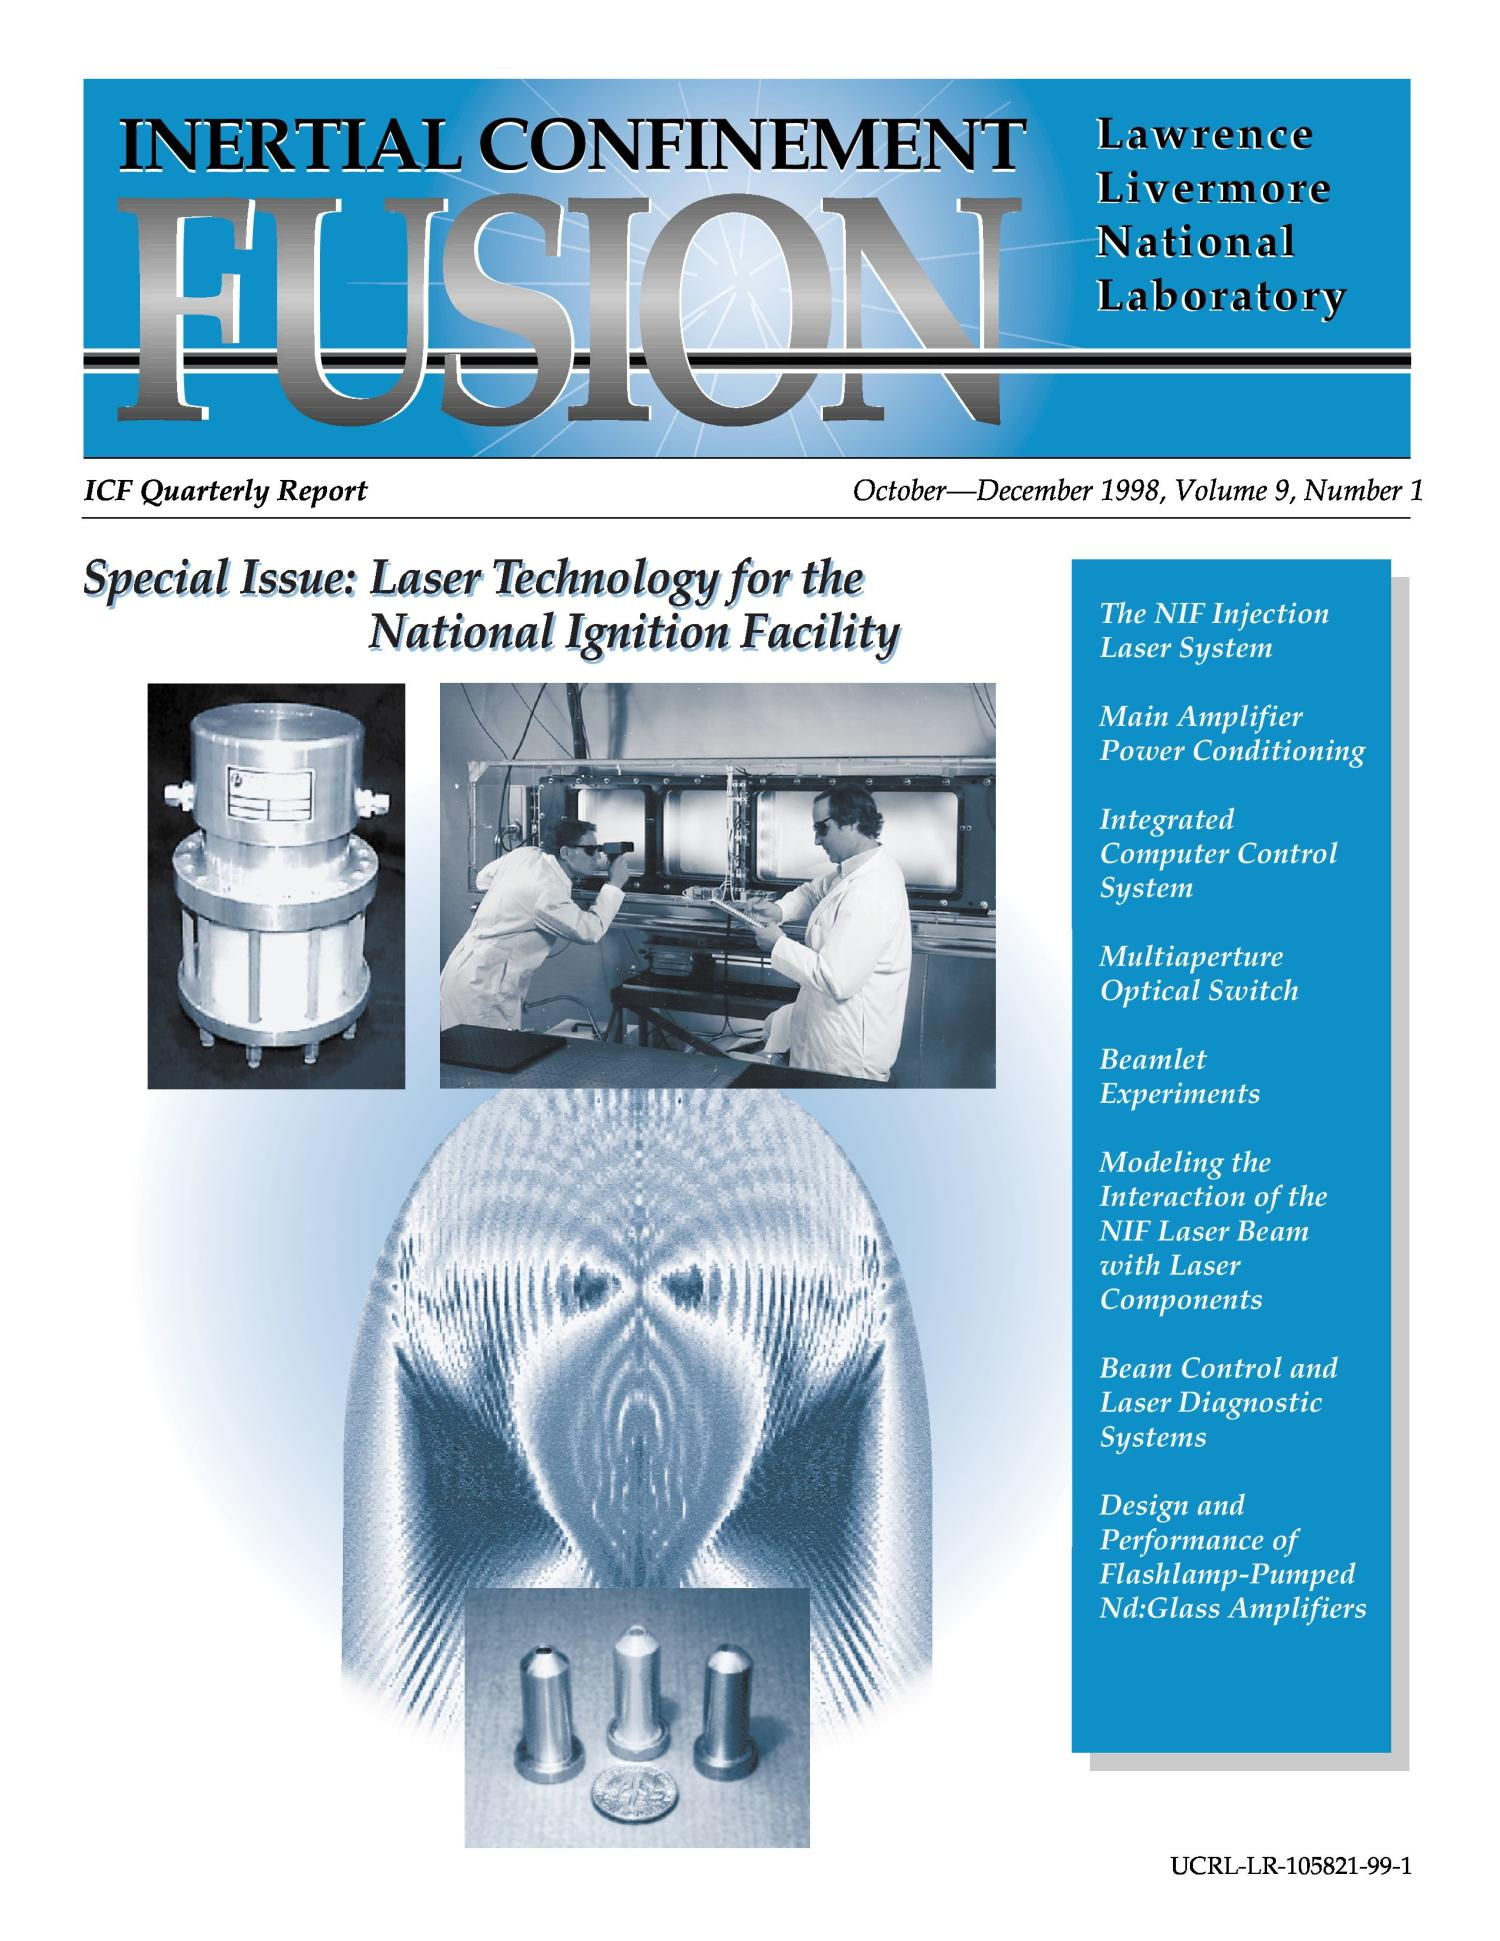 intertial confinement fusion essay Abstract: inertial confinement fusion (icf) is an attractive engine power source for interplanetary manned spacecraft, especially for near-term missions requiring minimum flight duration, because icf has inherent high power-to-mass ratios and high specific impulses.